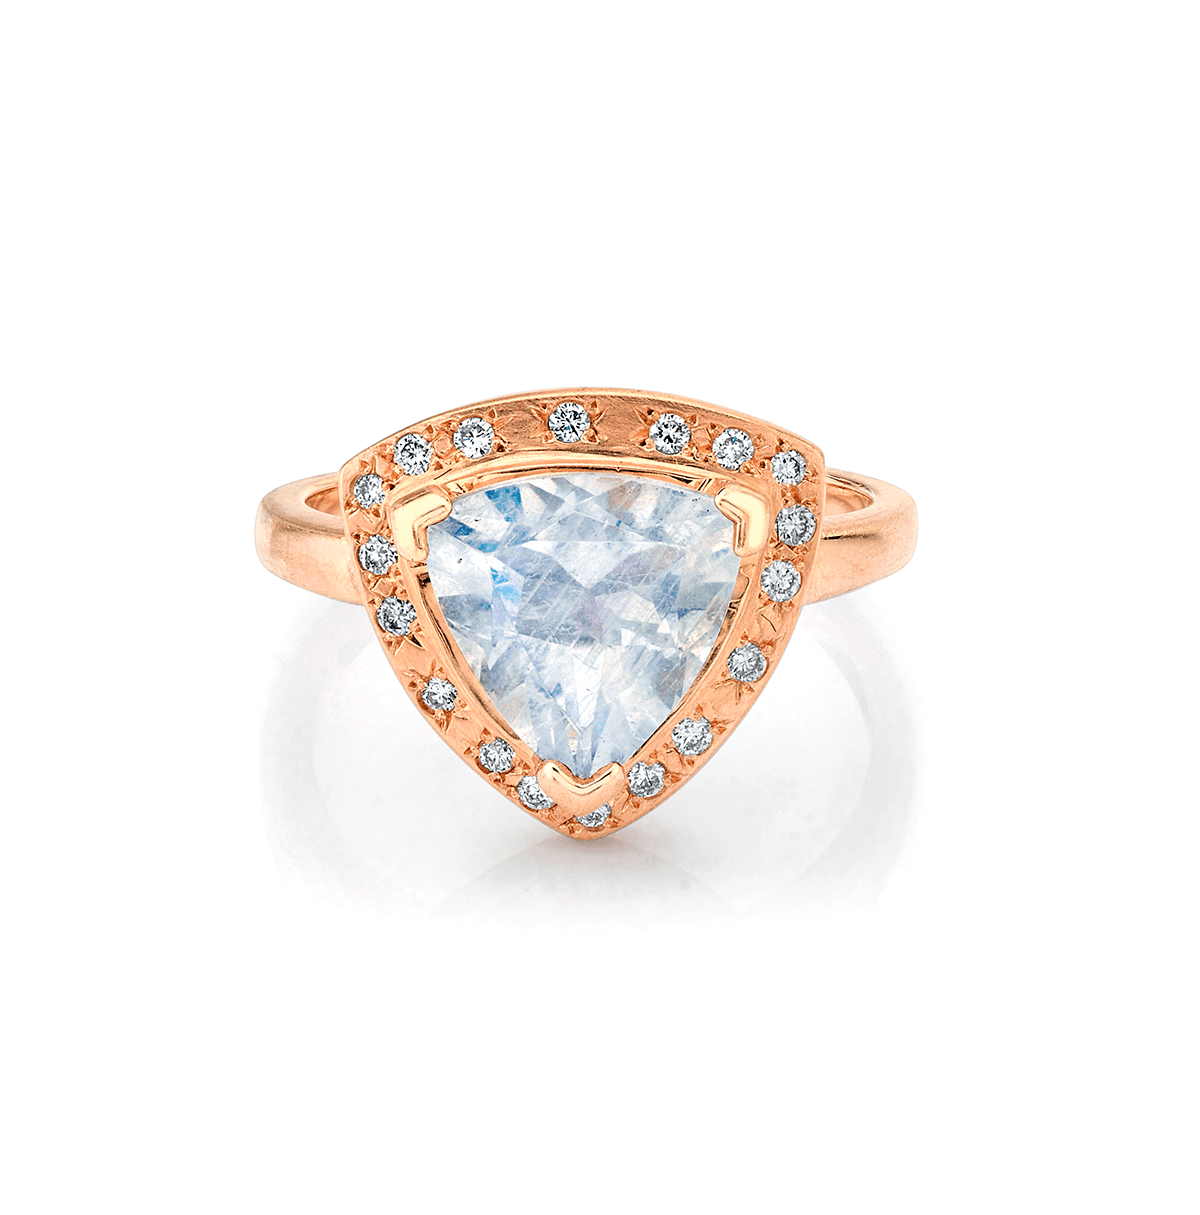 NEW! Premium Trillion Moonstone Wilderness Ring with Sprinkled Diamonds